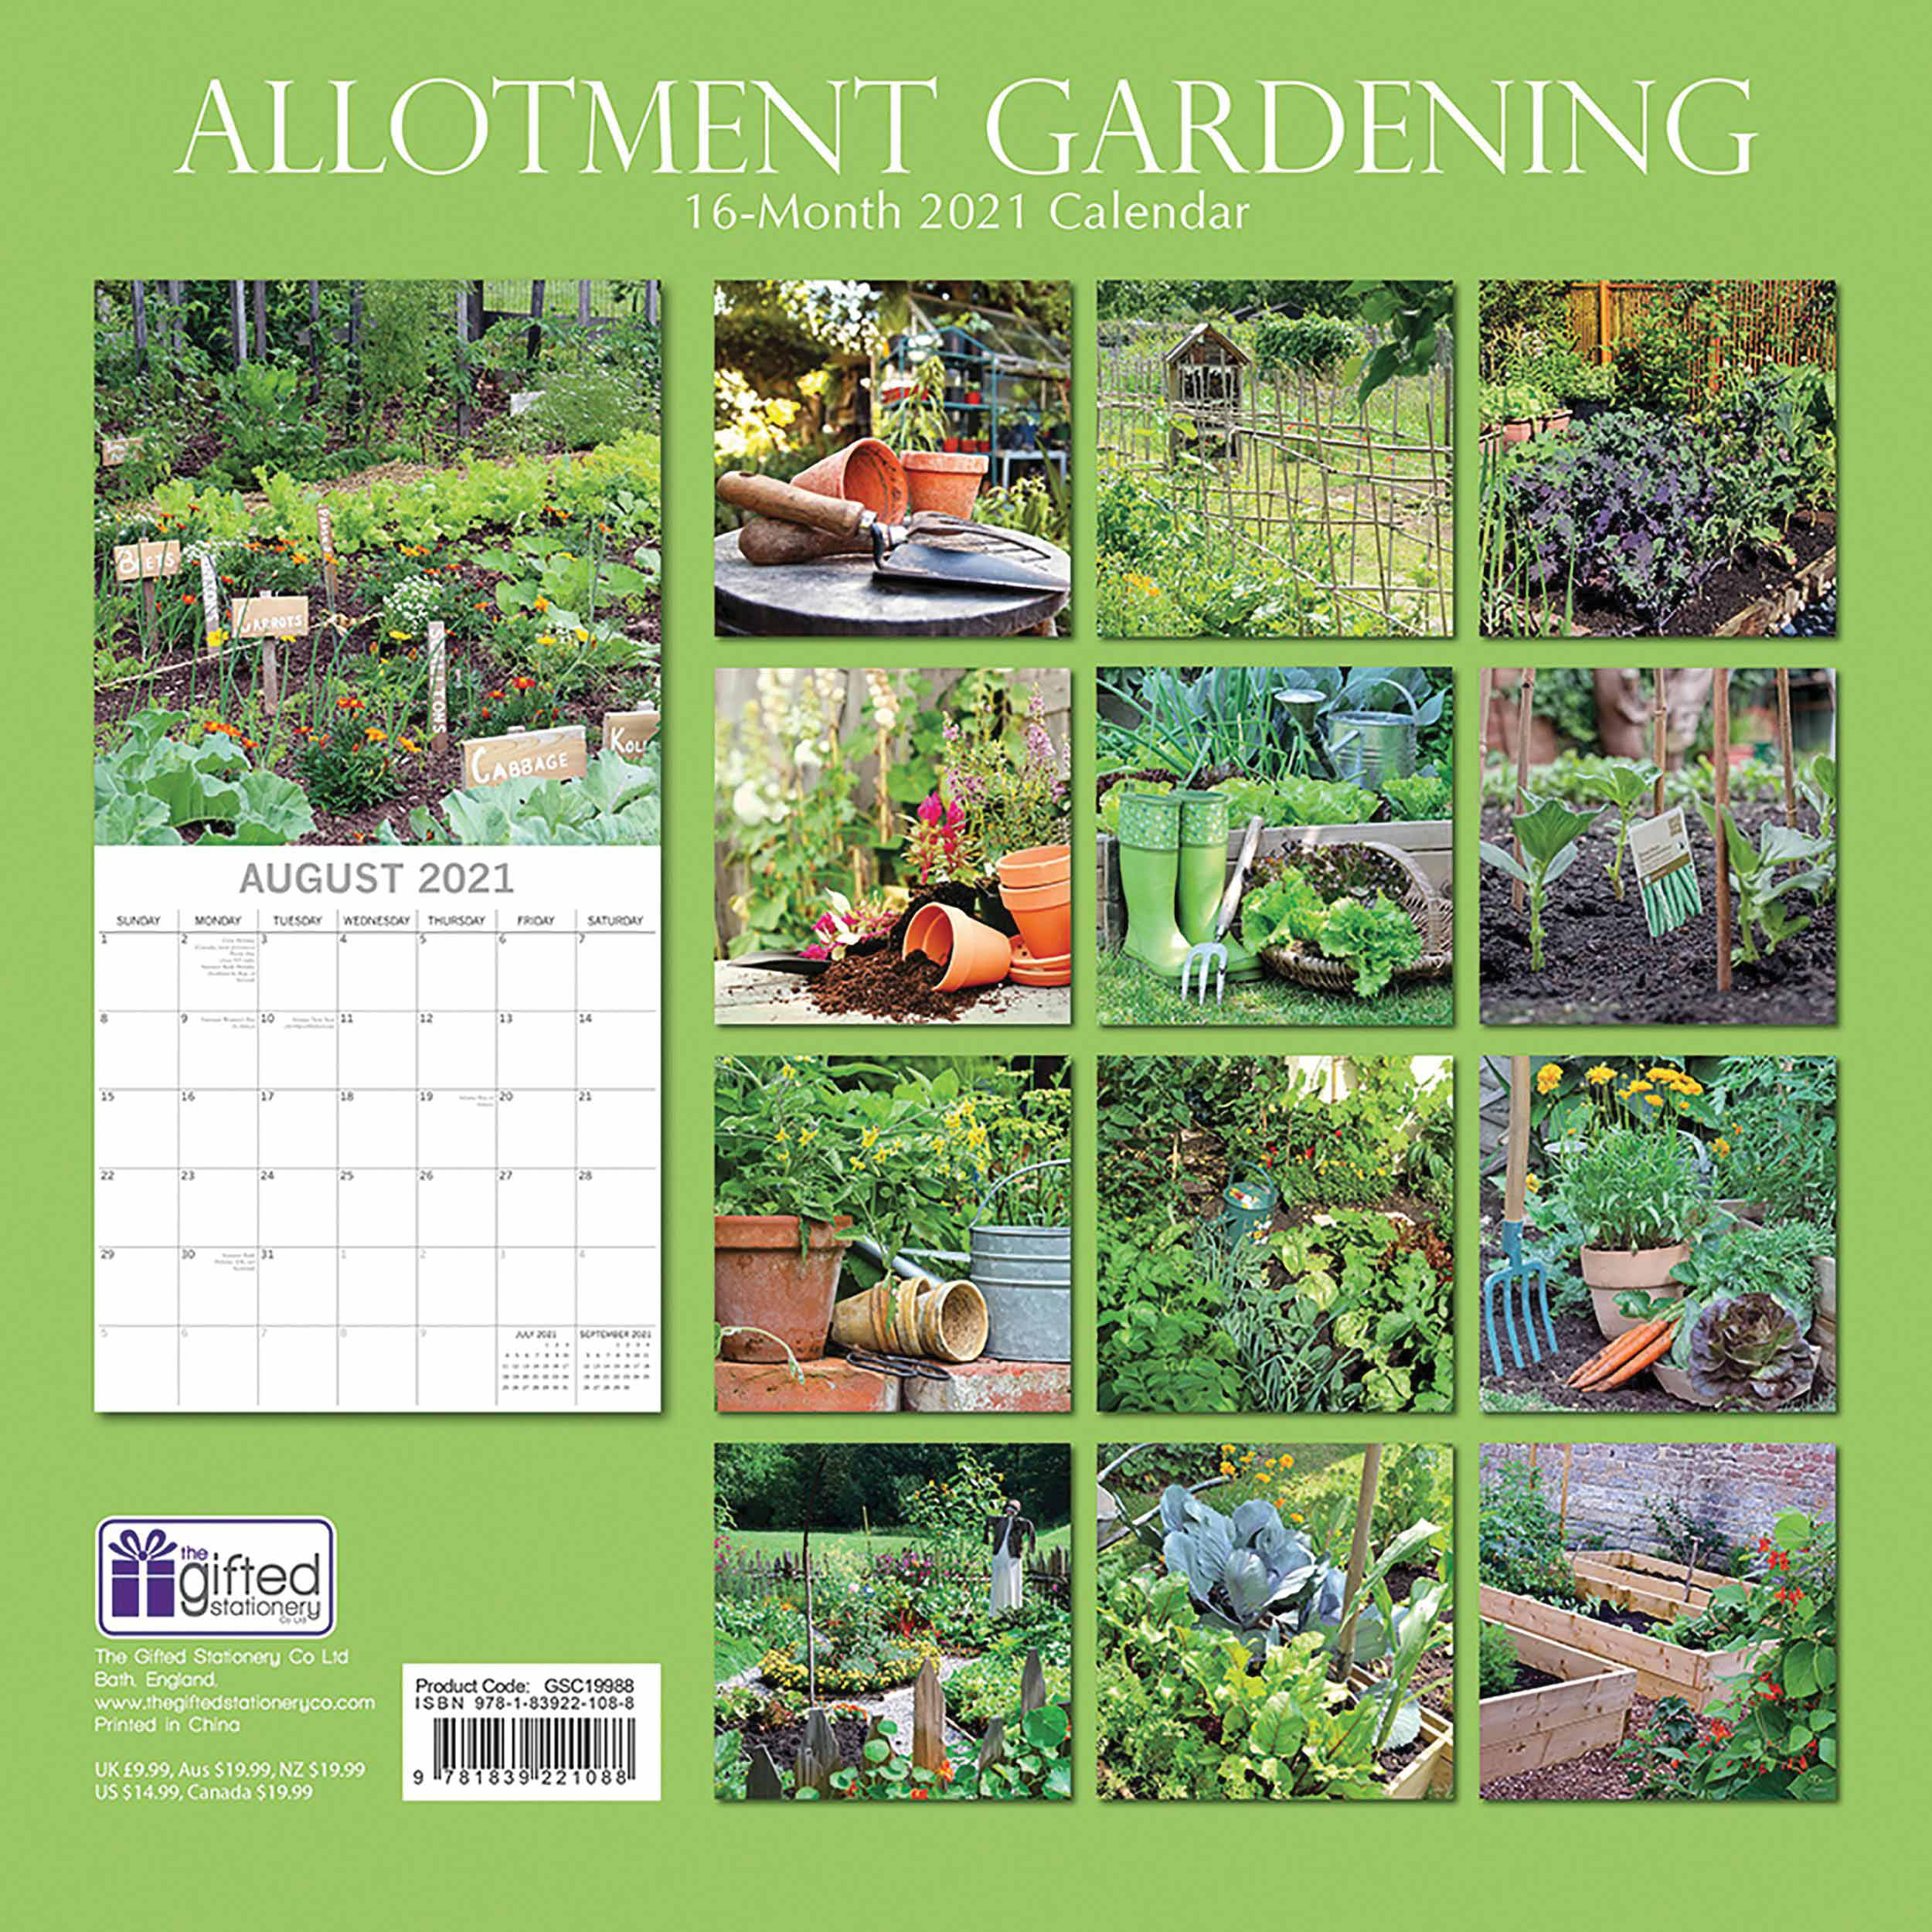 Allotment Gardening Calendar 2021 At Calendar Club